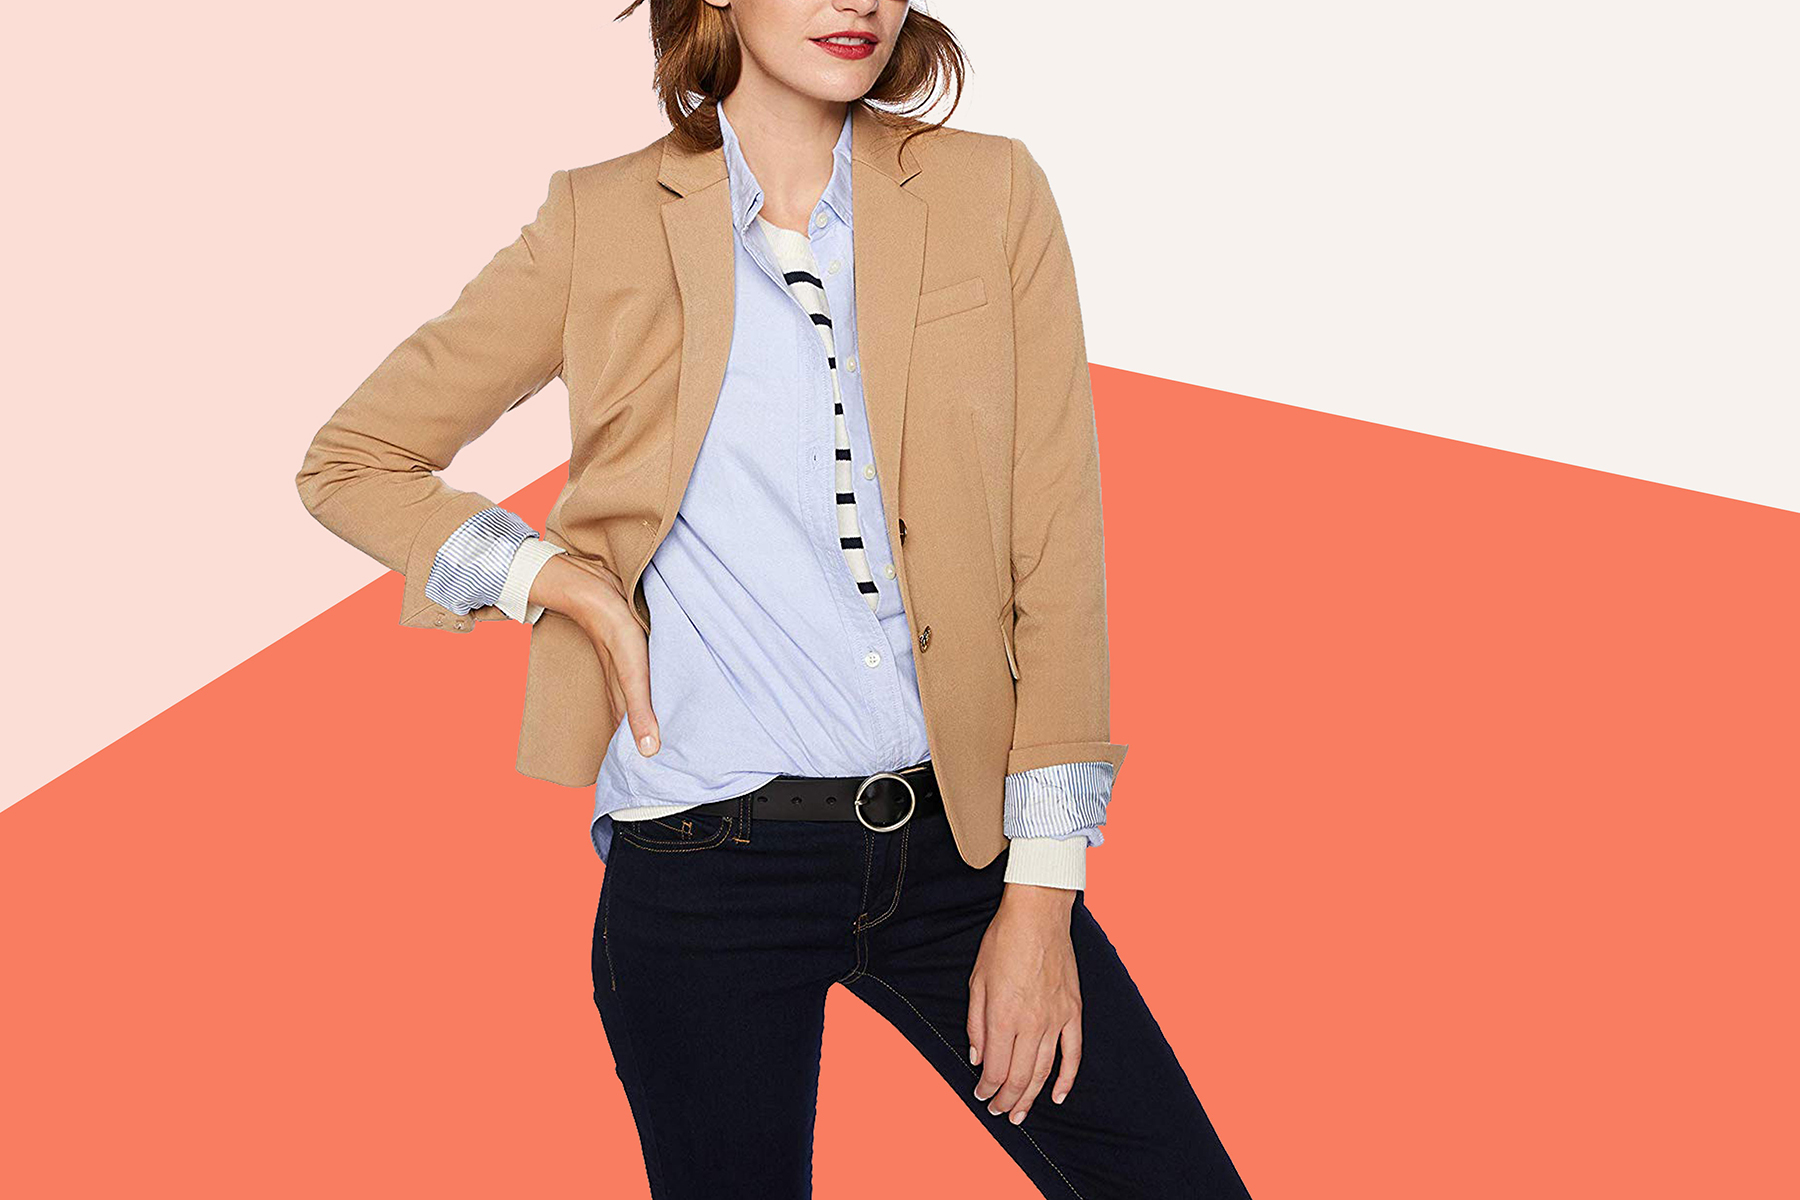 5 Chic Blazers That Look Great With Any Outfit